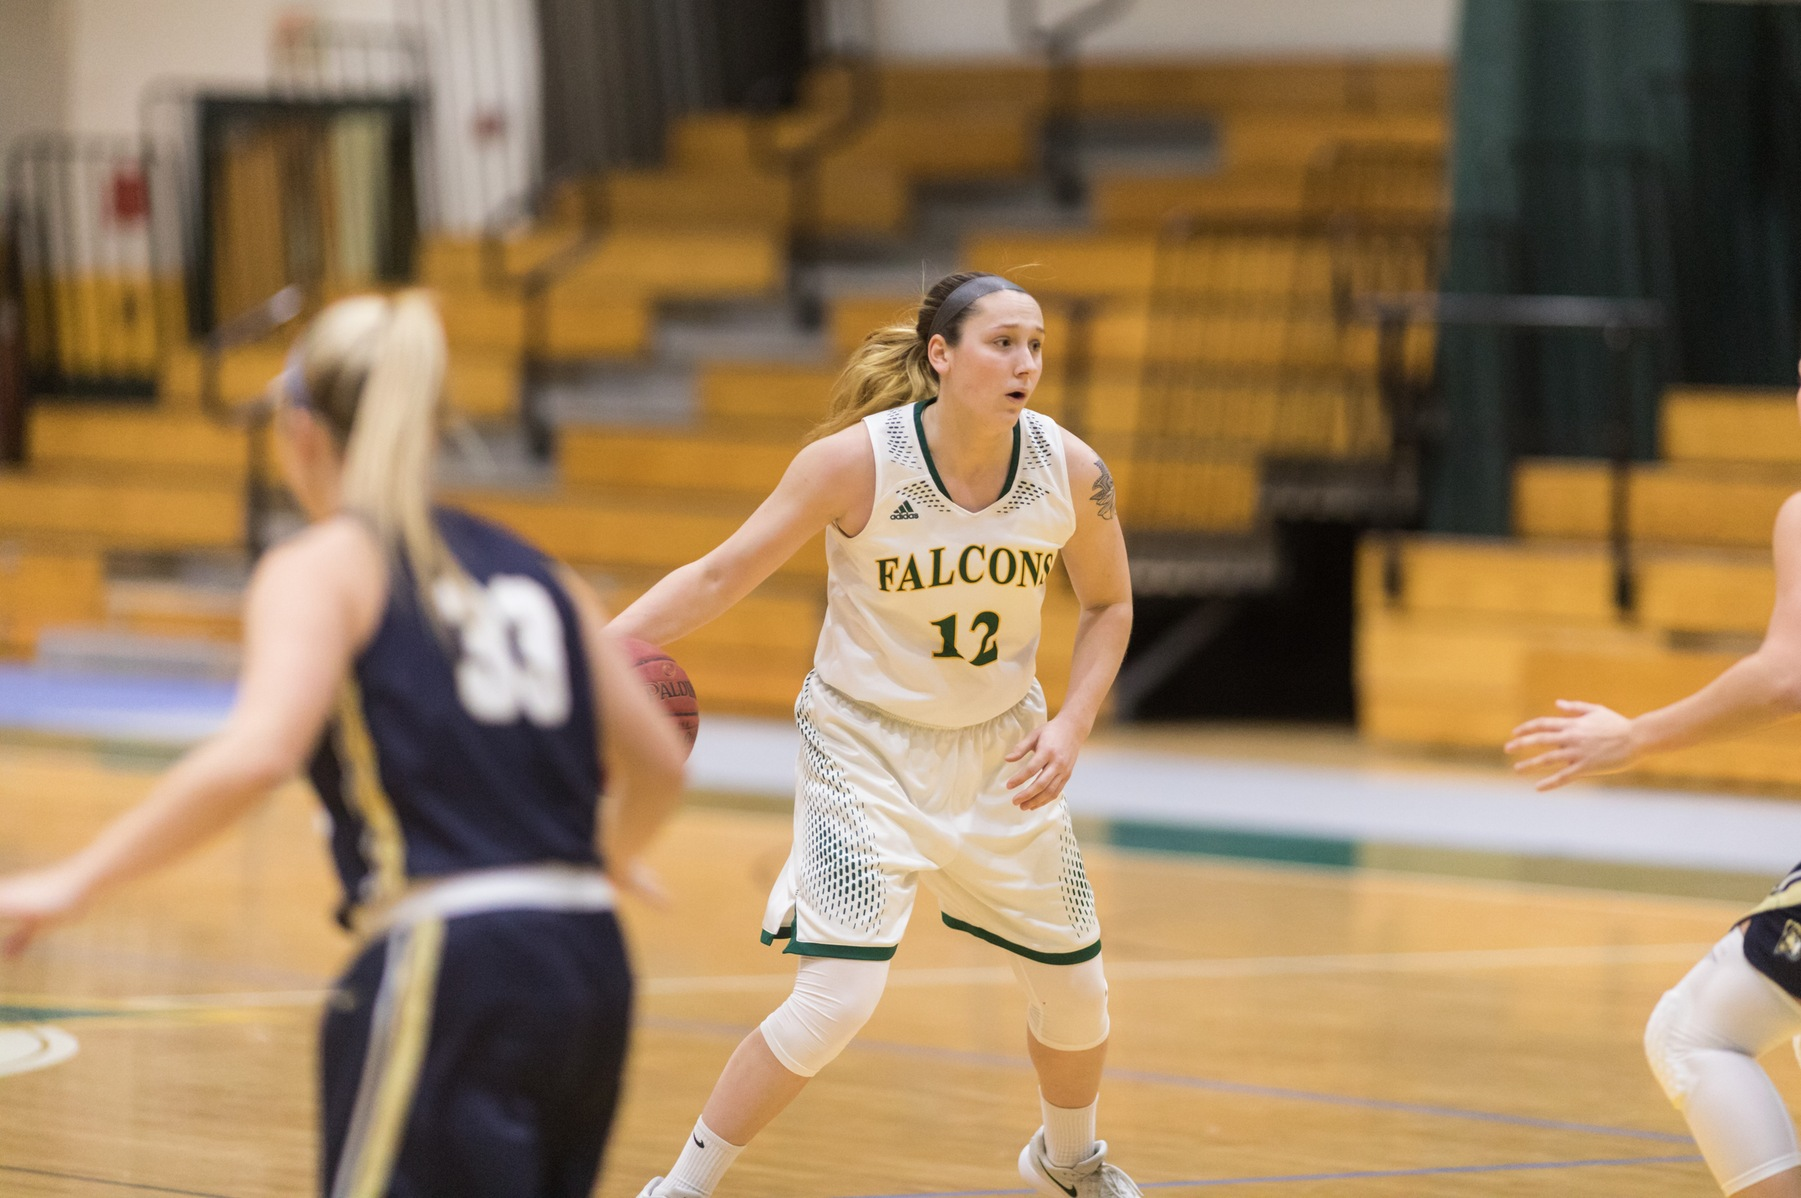 Falcons Rally Past Trailblazers, 81-76